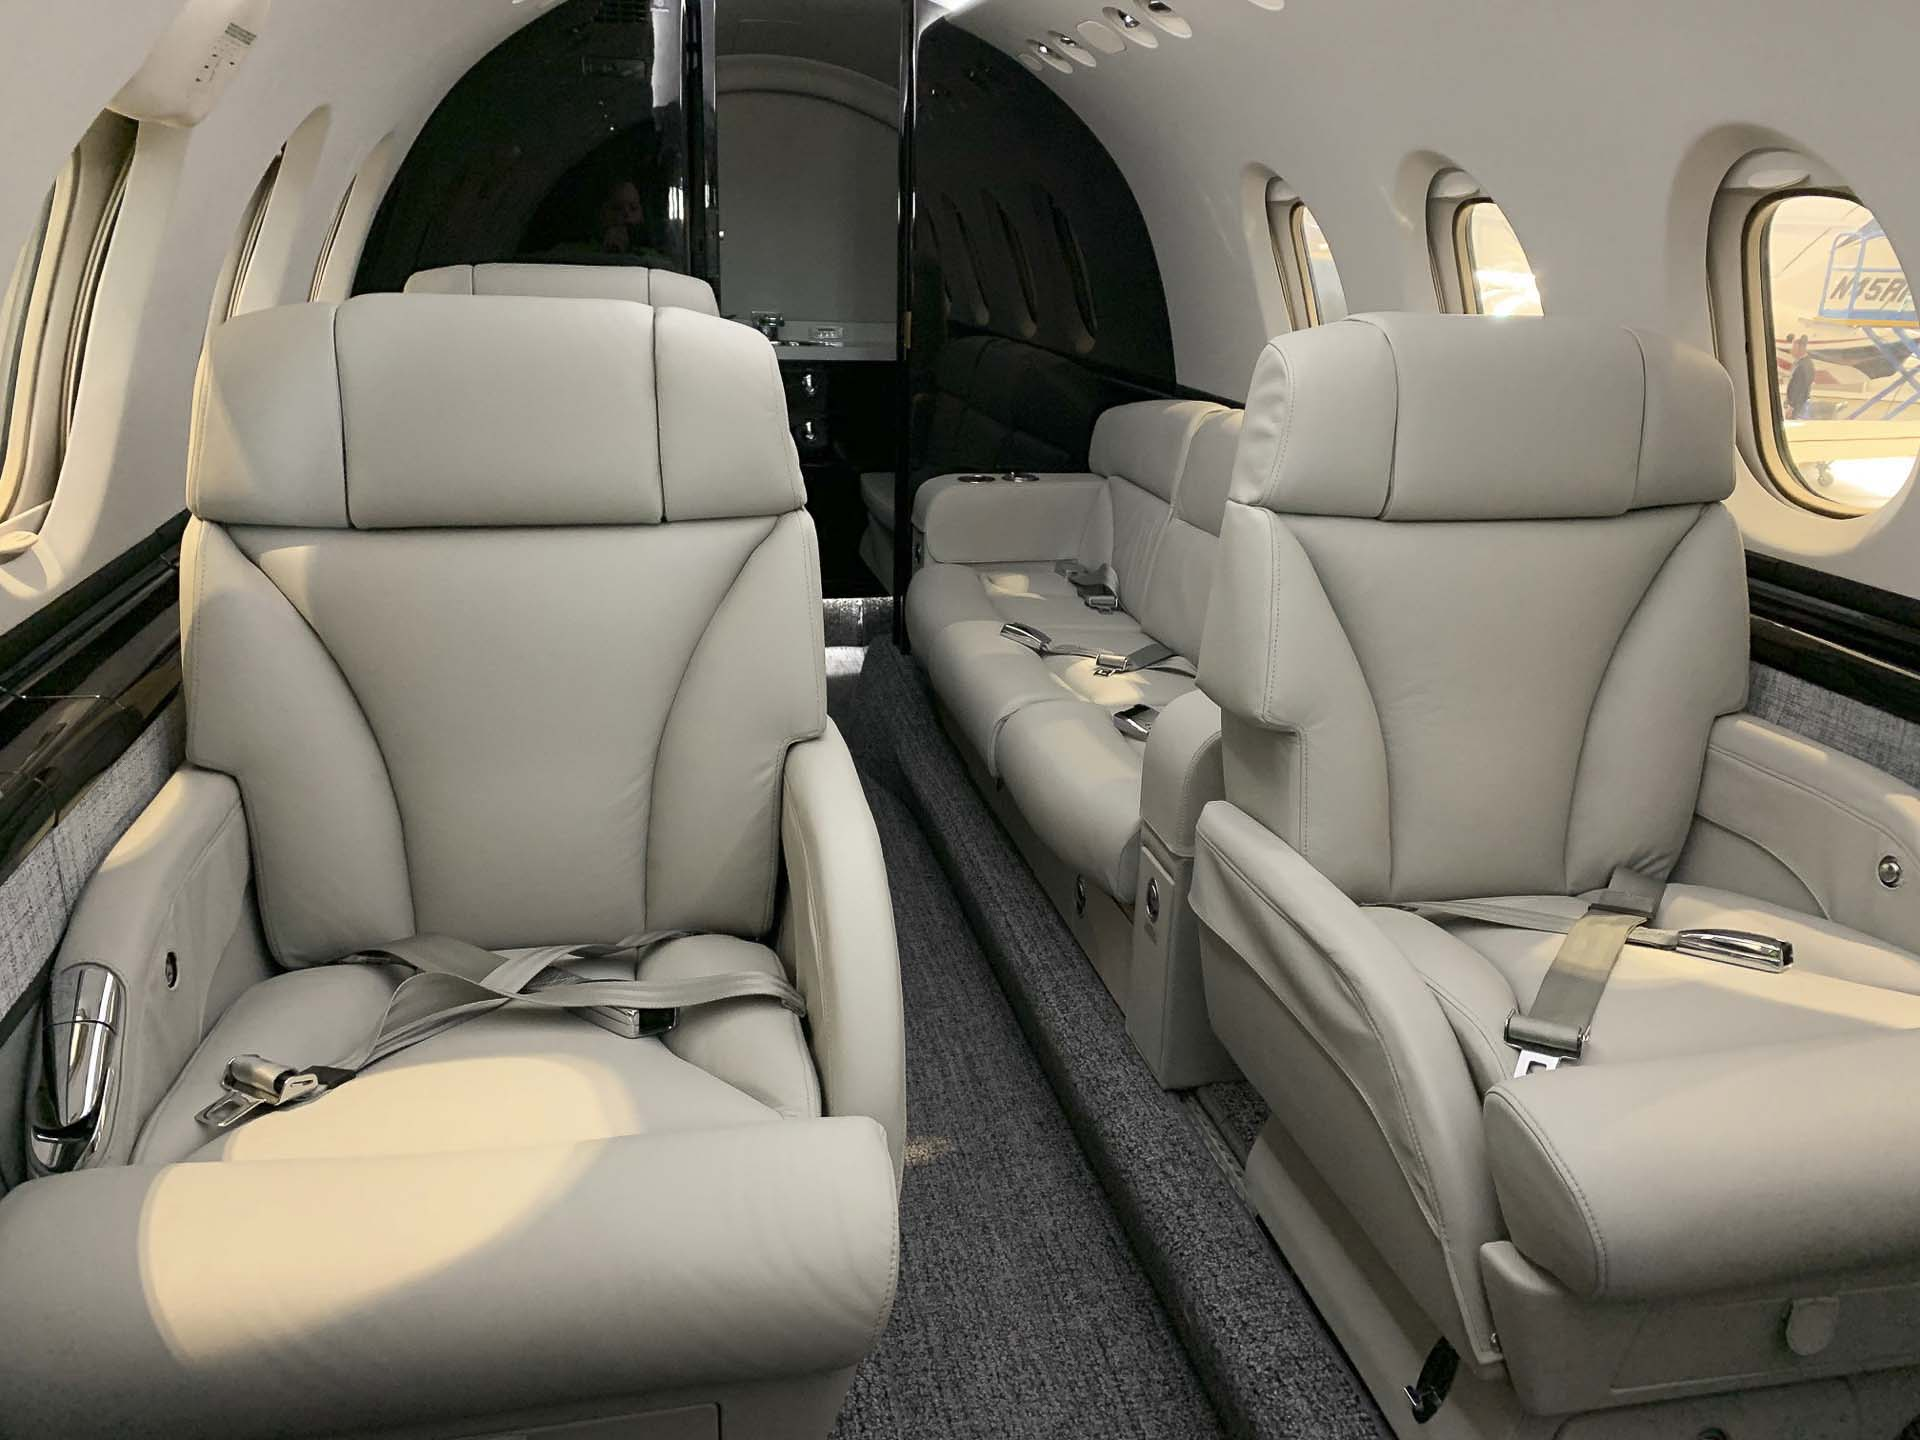 Hawker 850XP seats